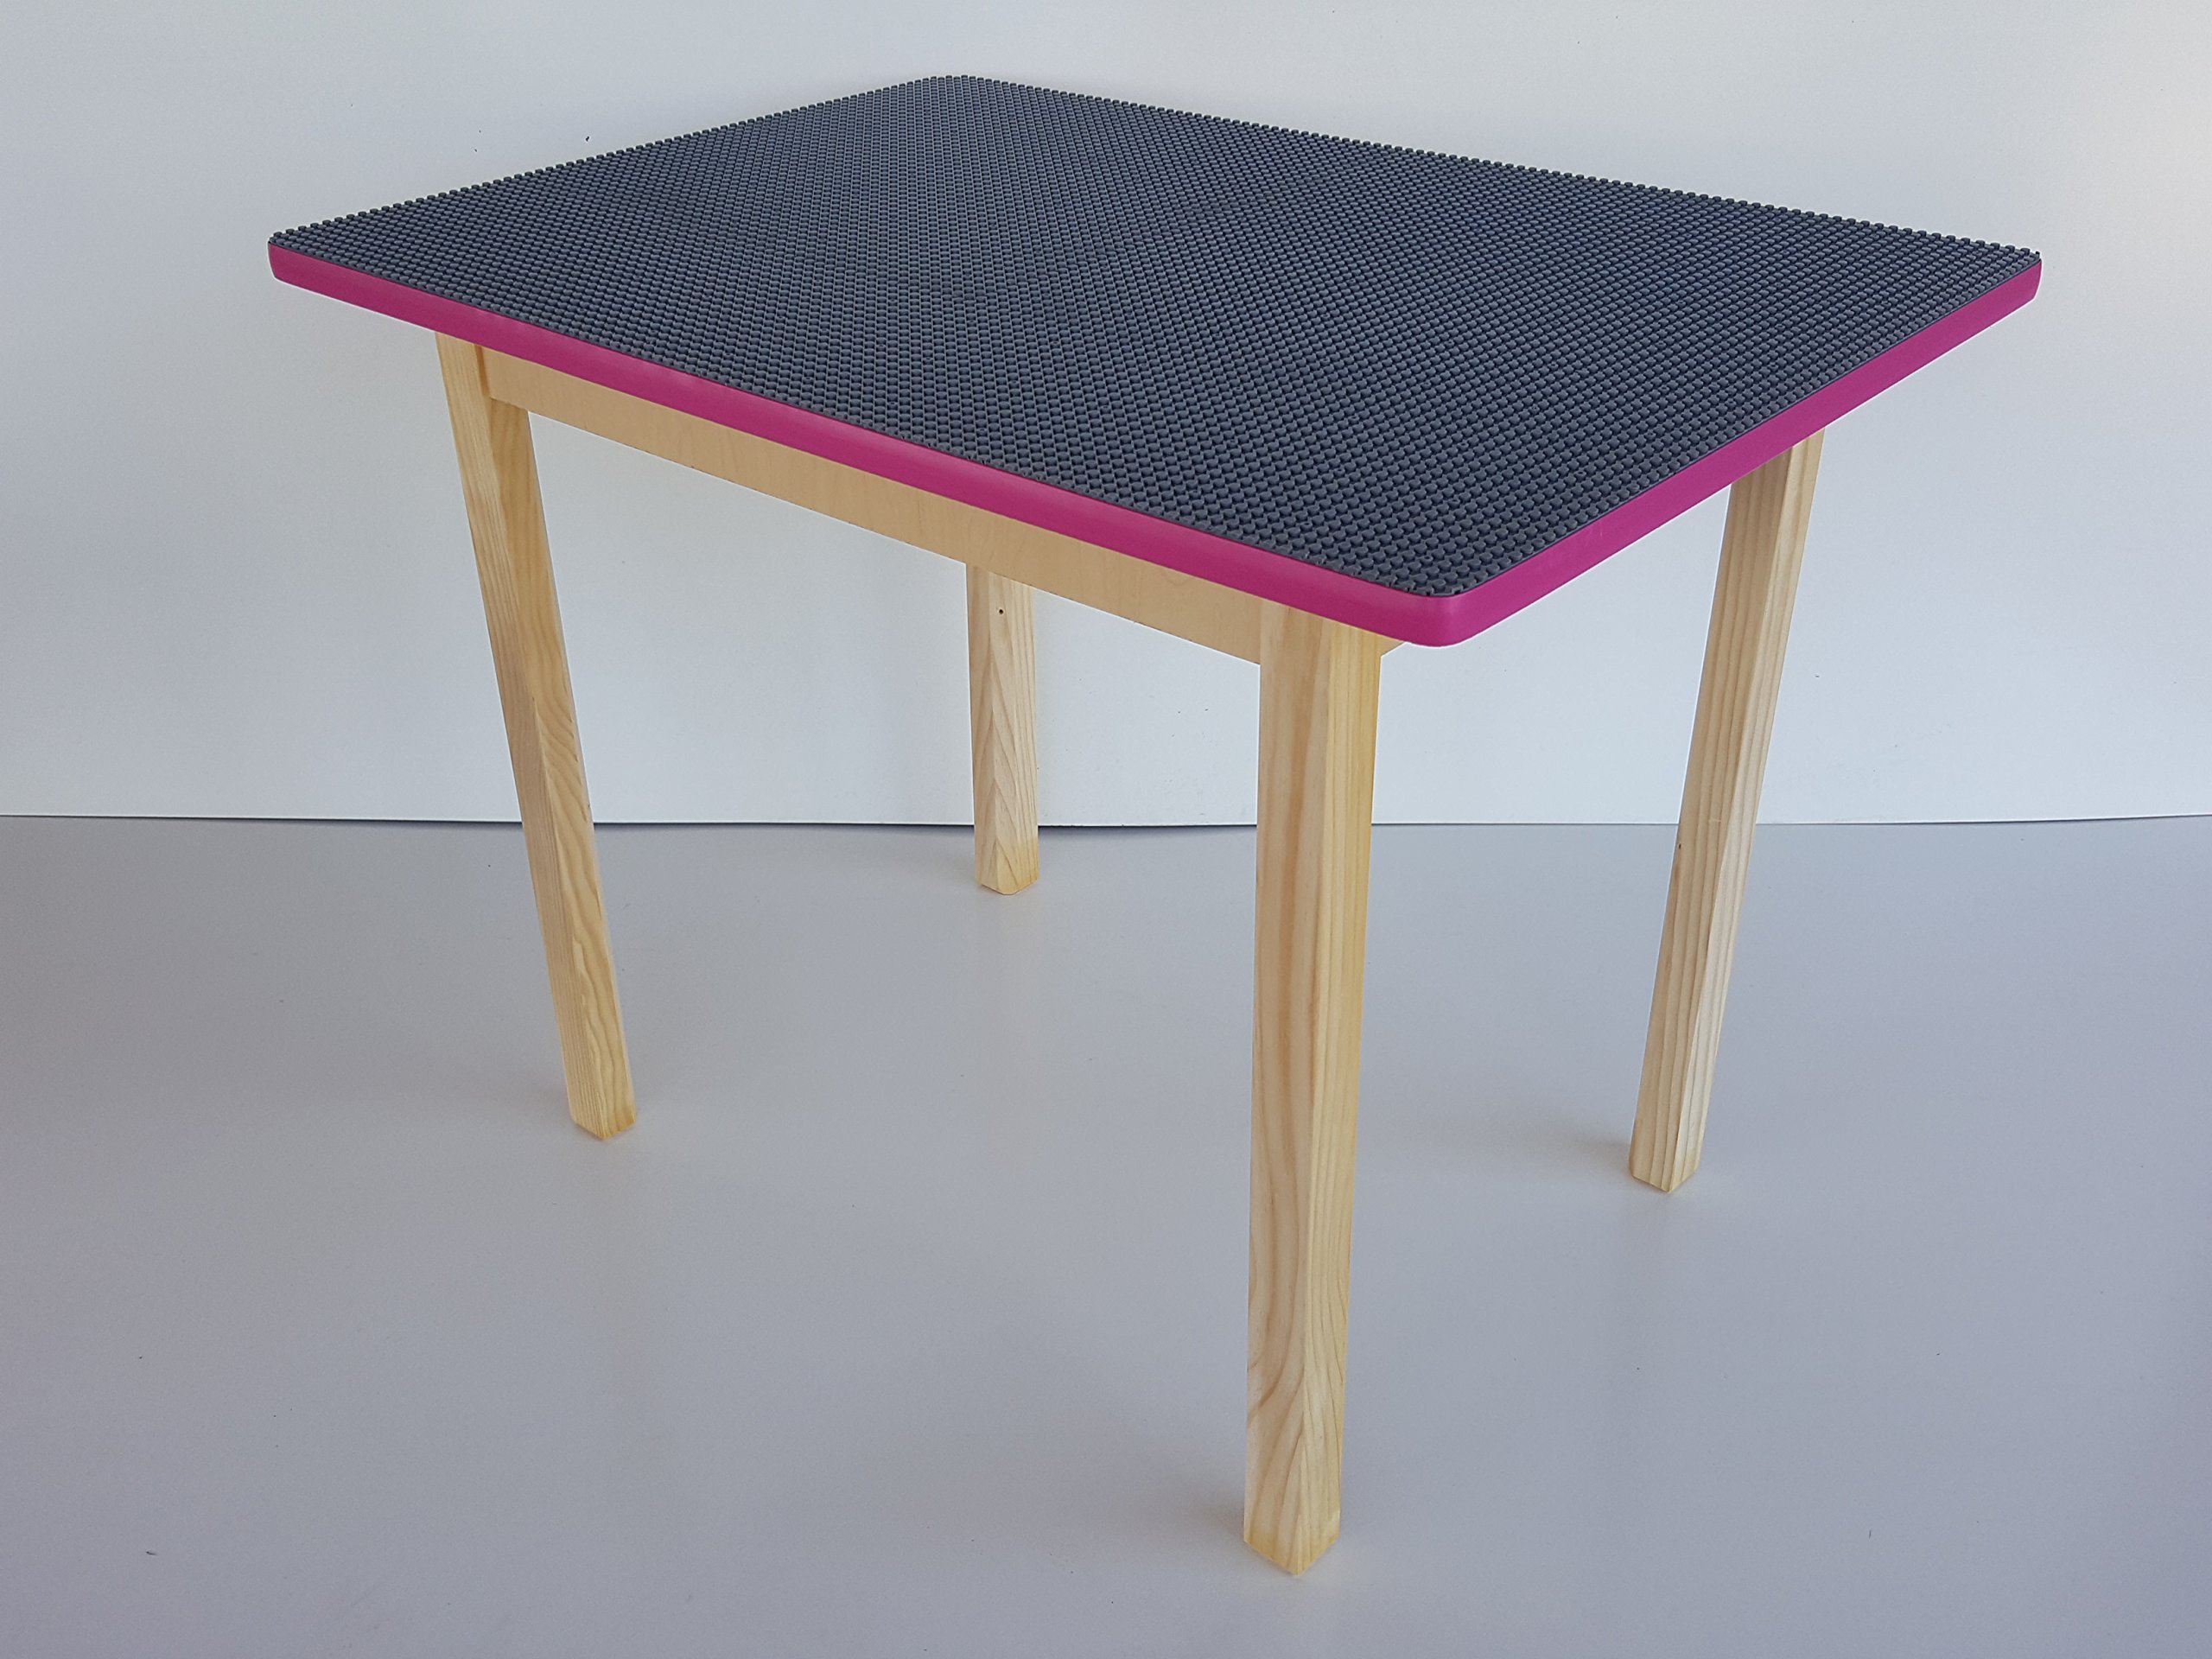 Deluxe large girls LEGO table - LEGO-Compatible table with pink trim - Made in USA